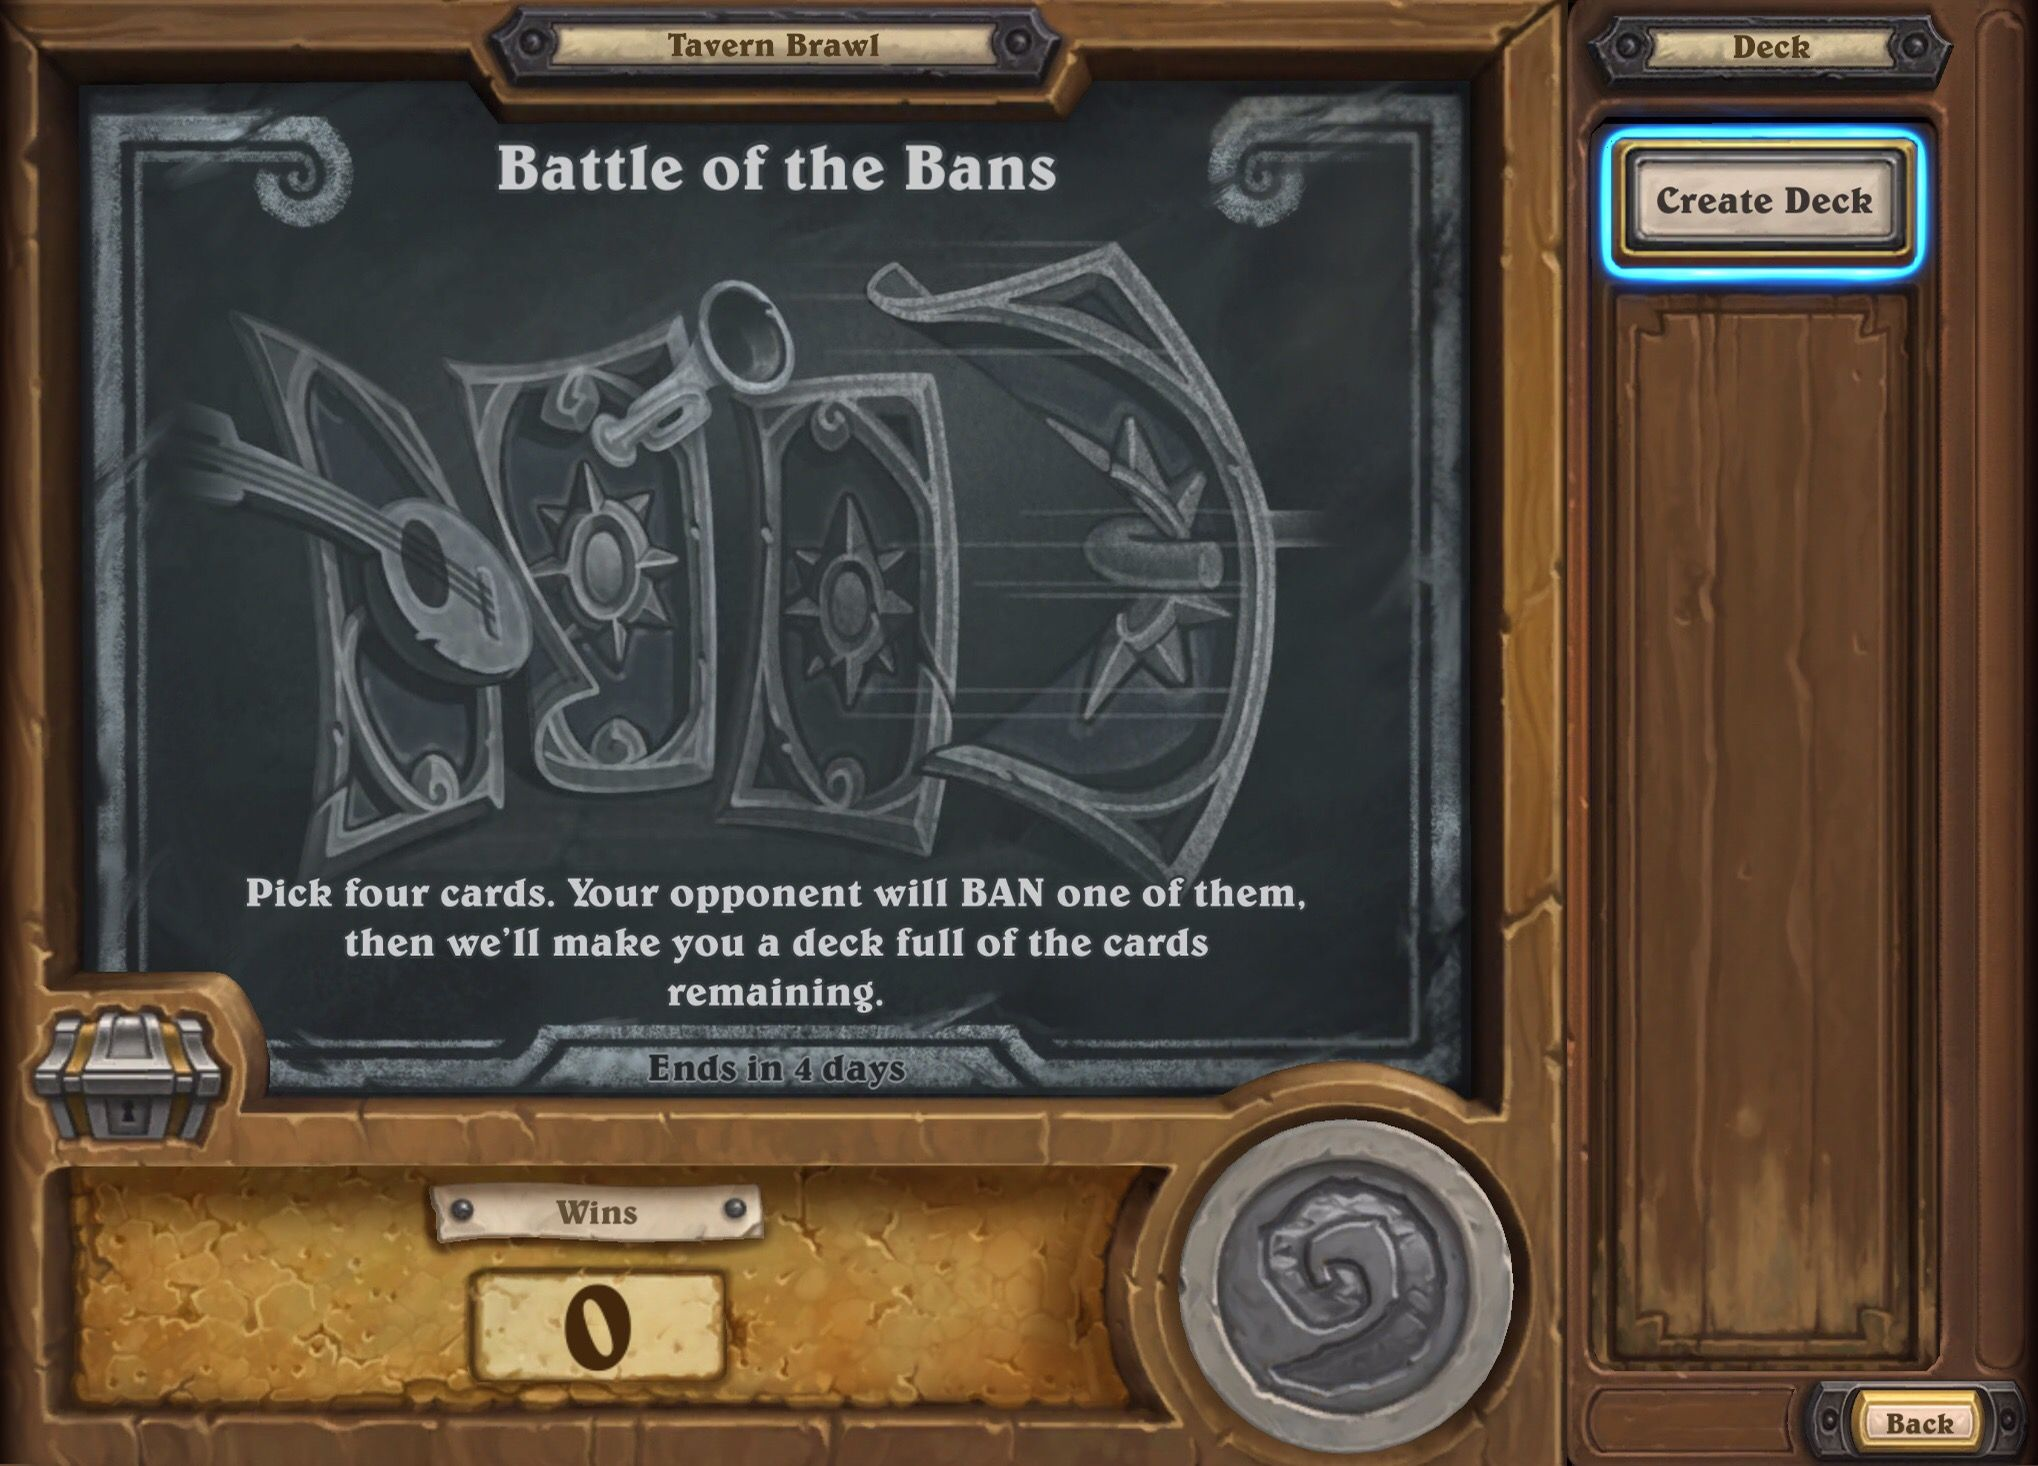 hearthstone tavern brawl battle of the bans guide deck list best class